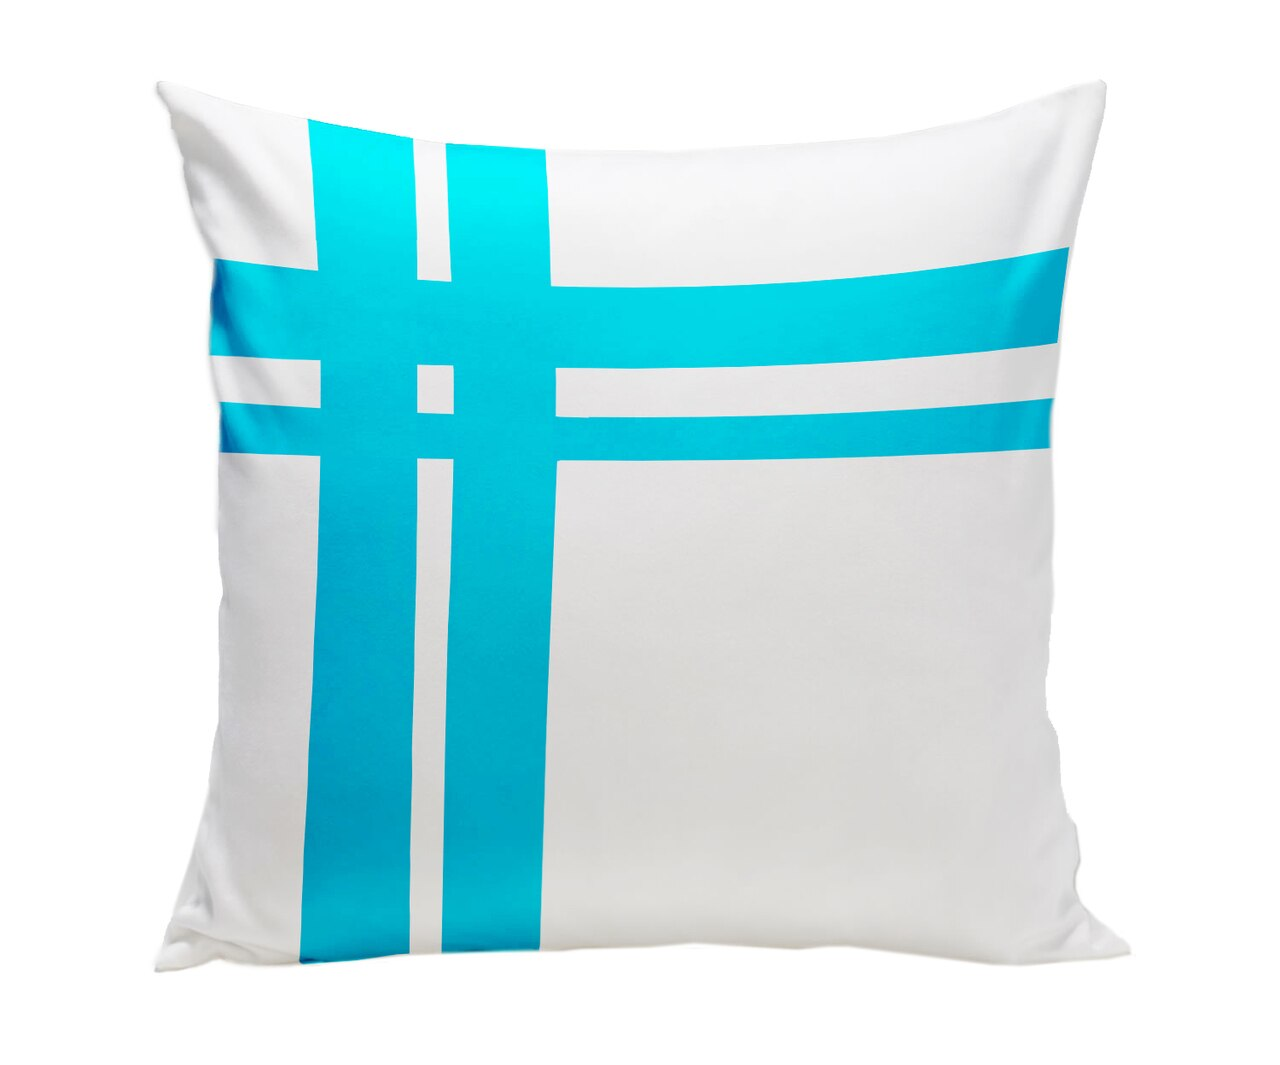 Spot On Square Hashtag Organic Pillow